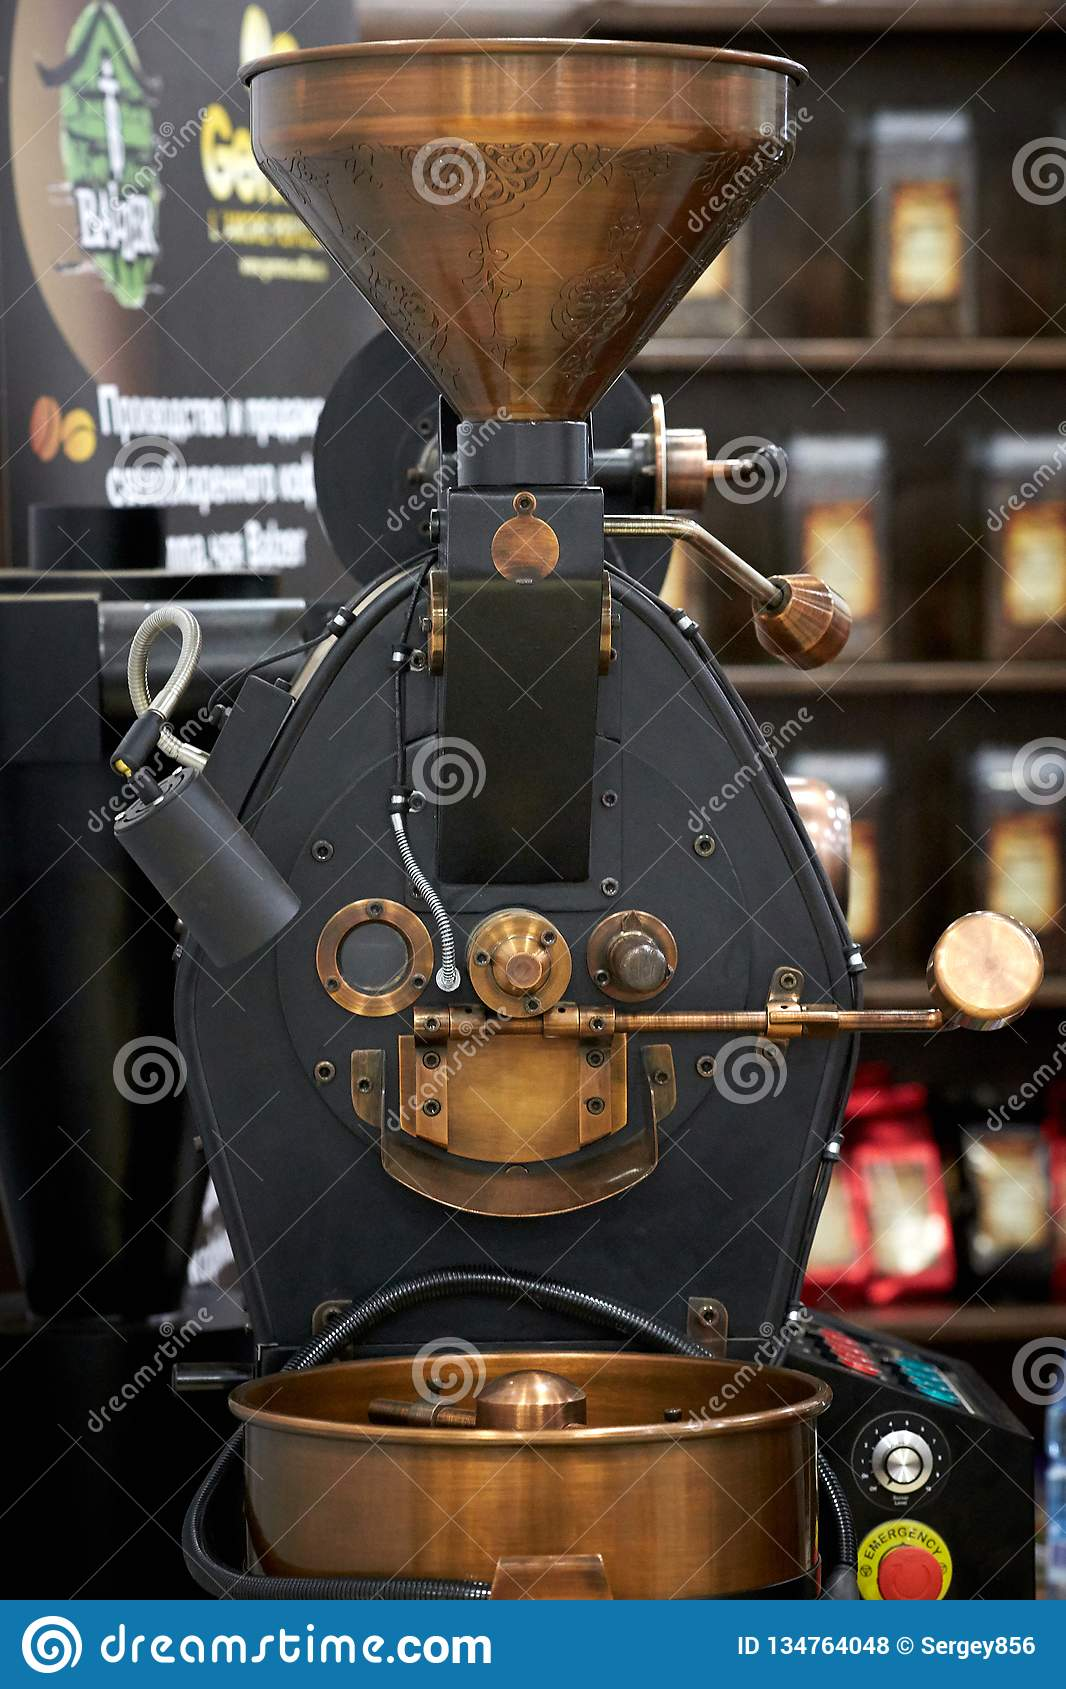 Presentation Of The Italian Machine For Roasting Coffee In